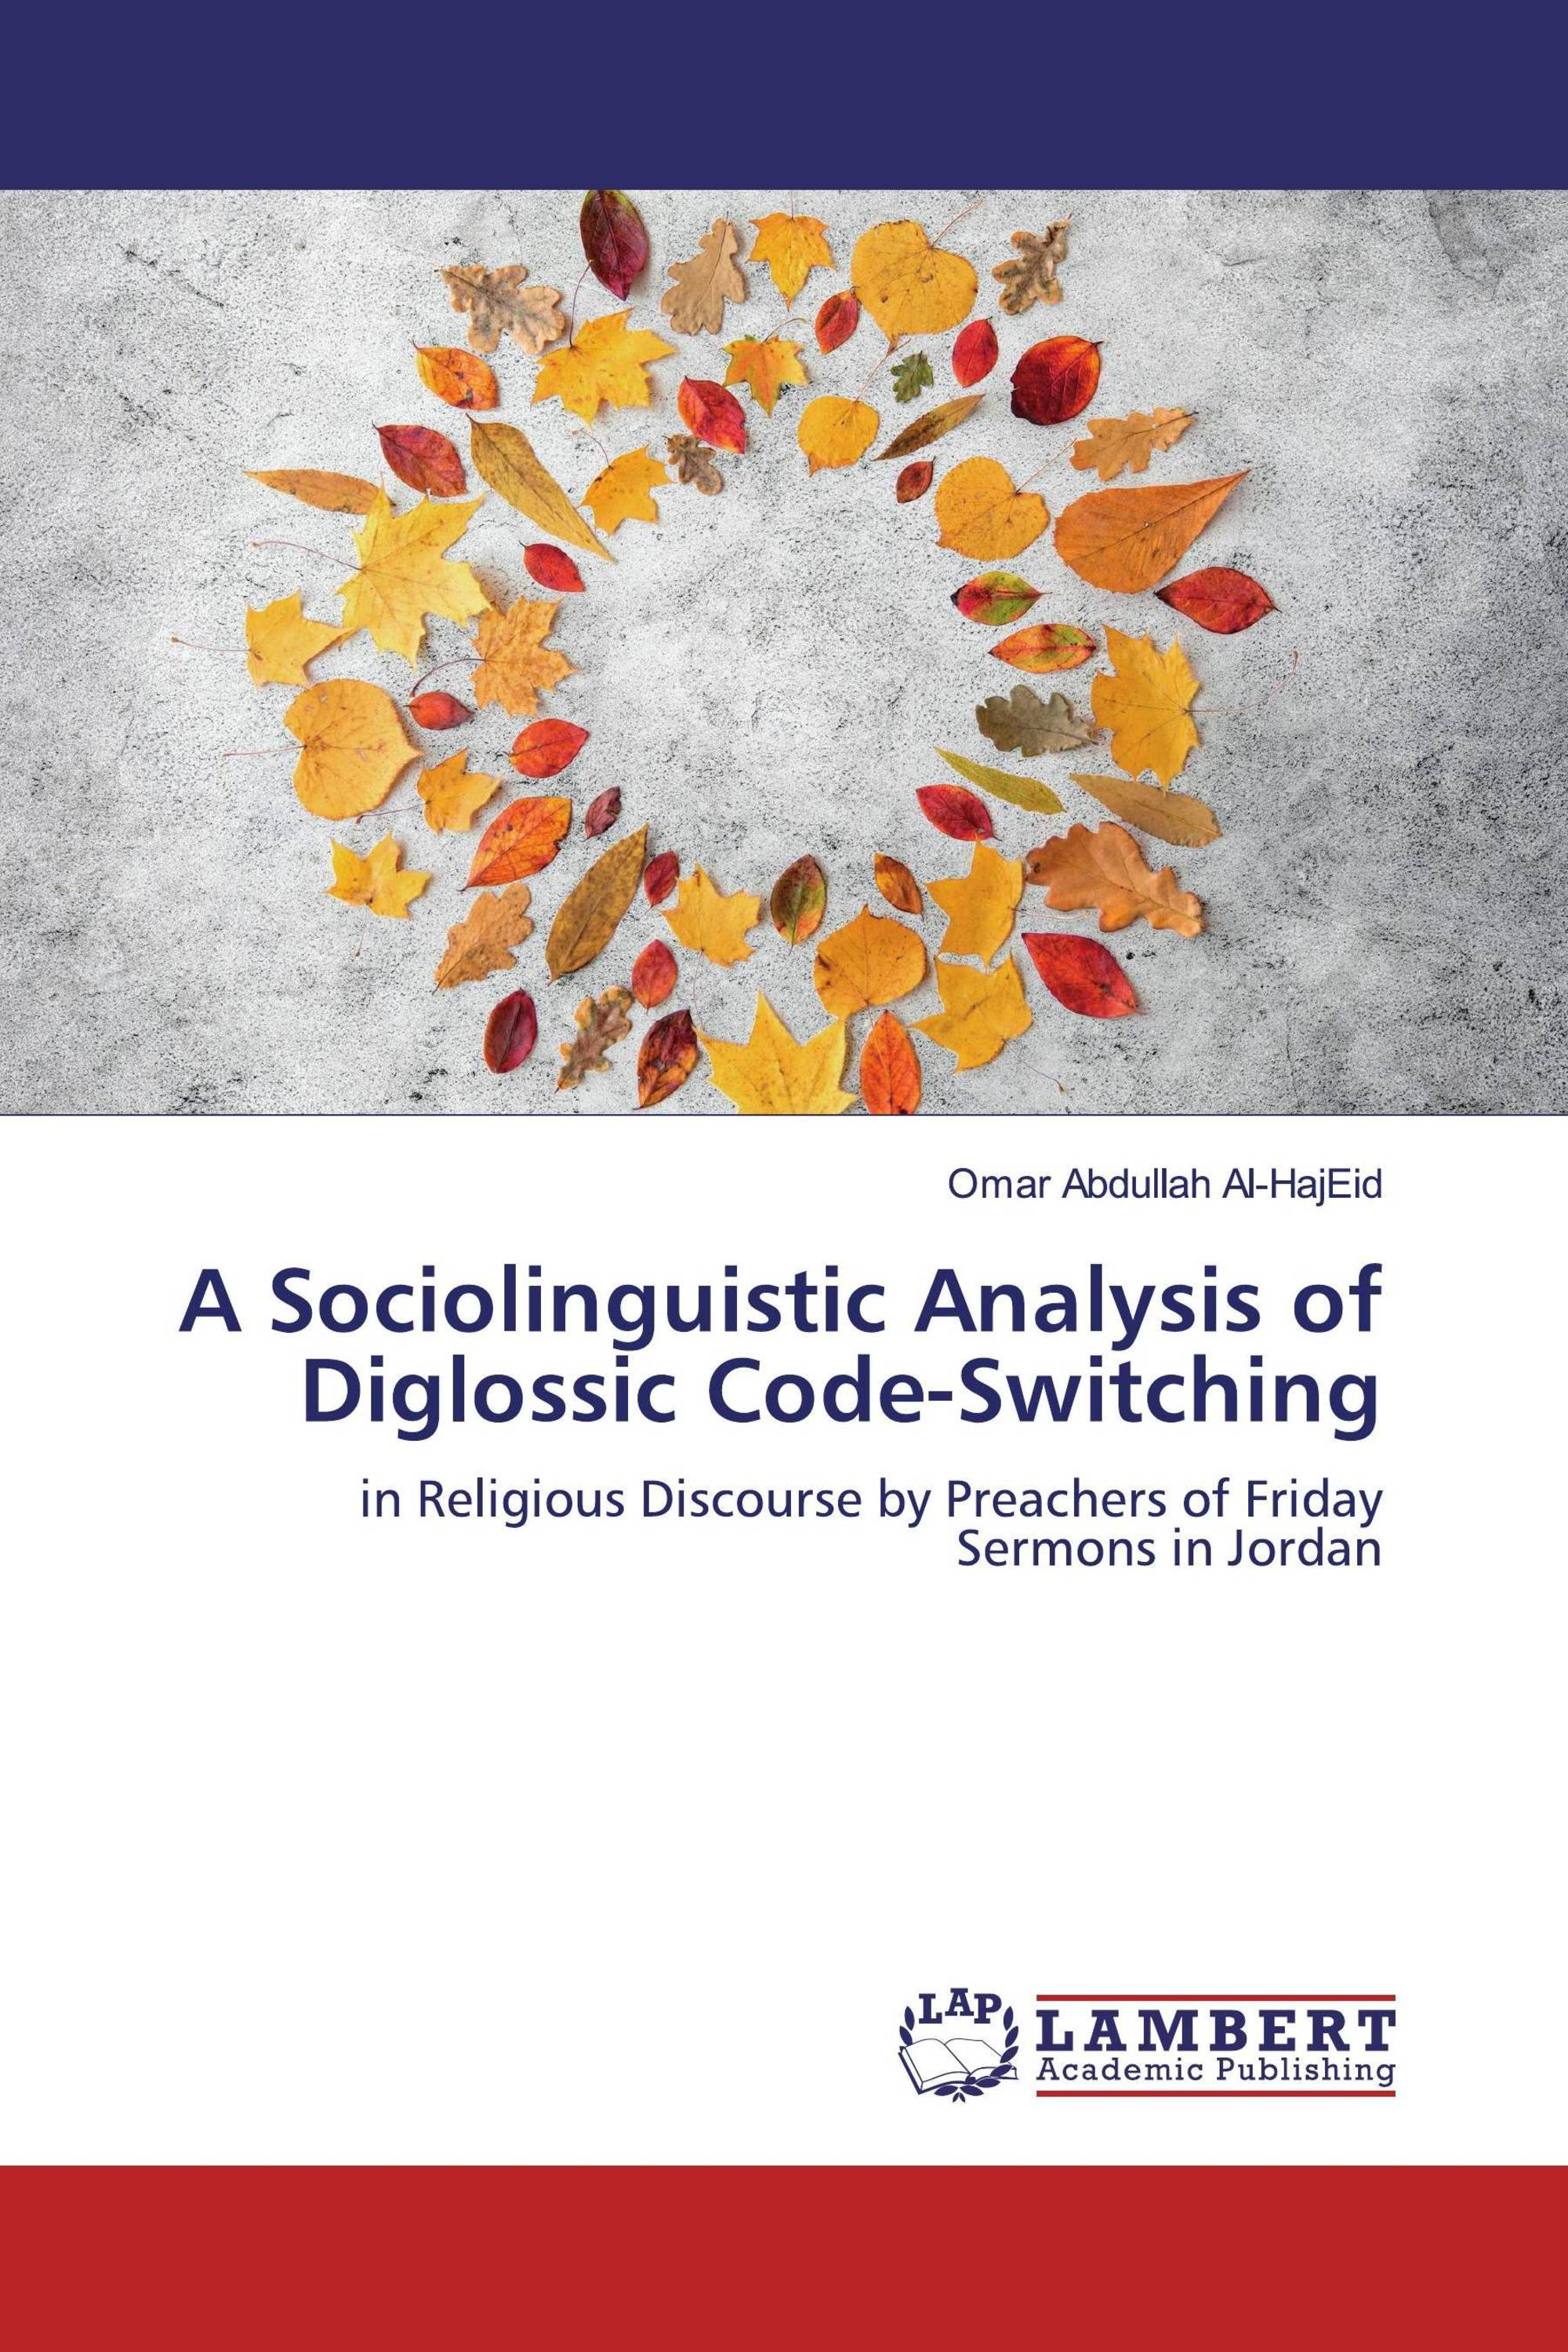 A Sociolinguistic Analysis of Diglossic Code-Switching